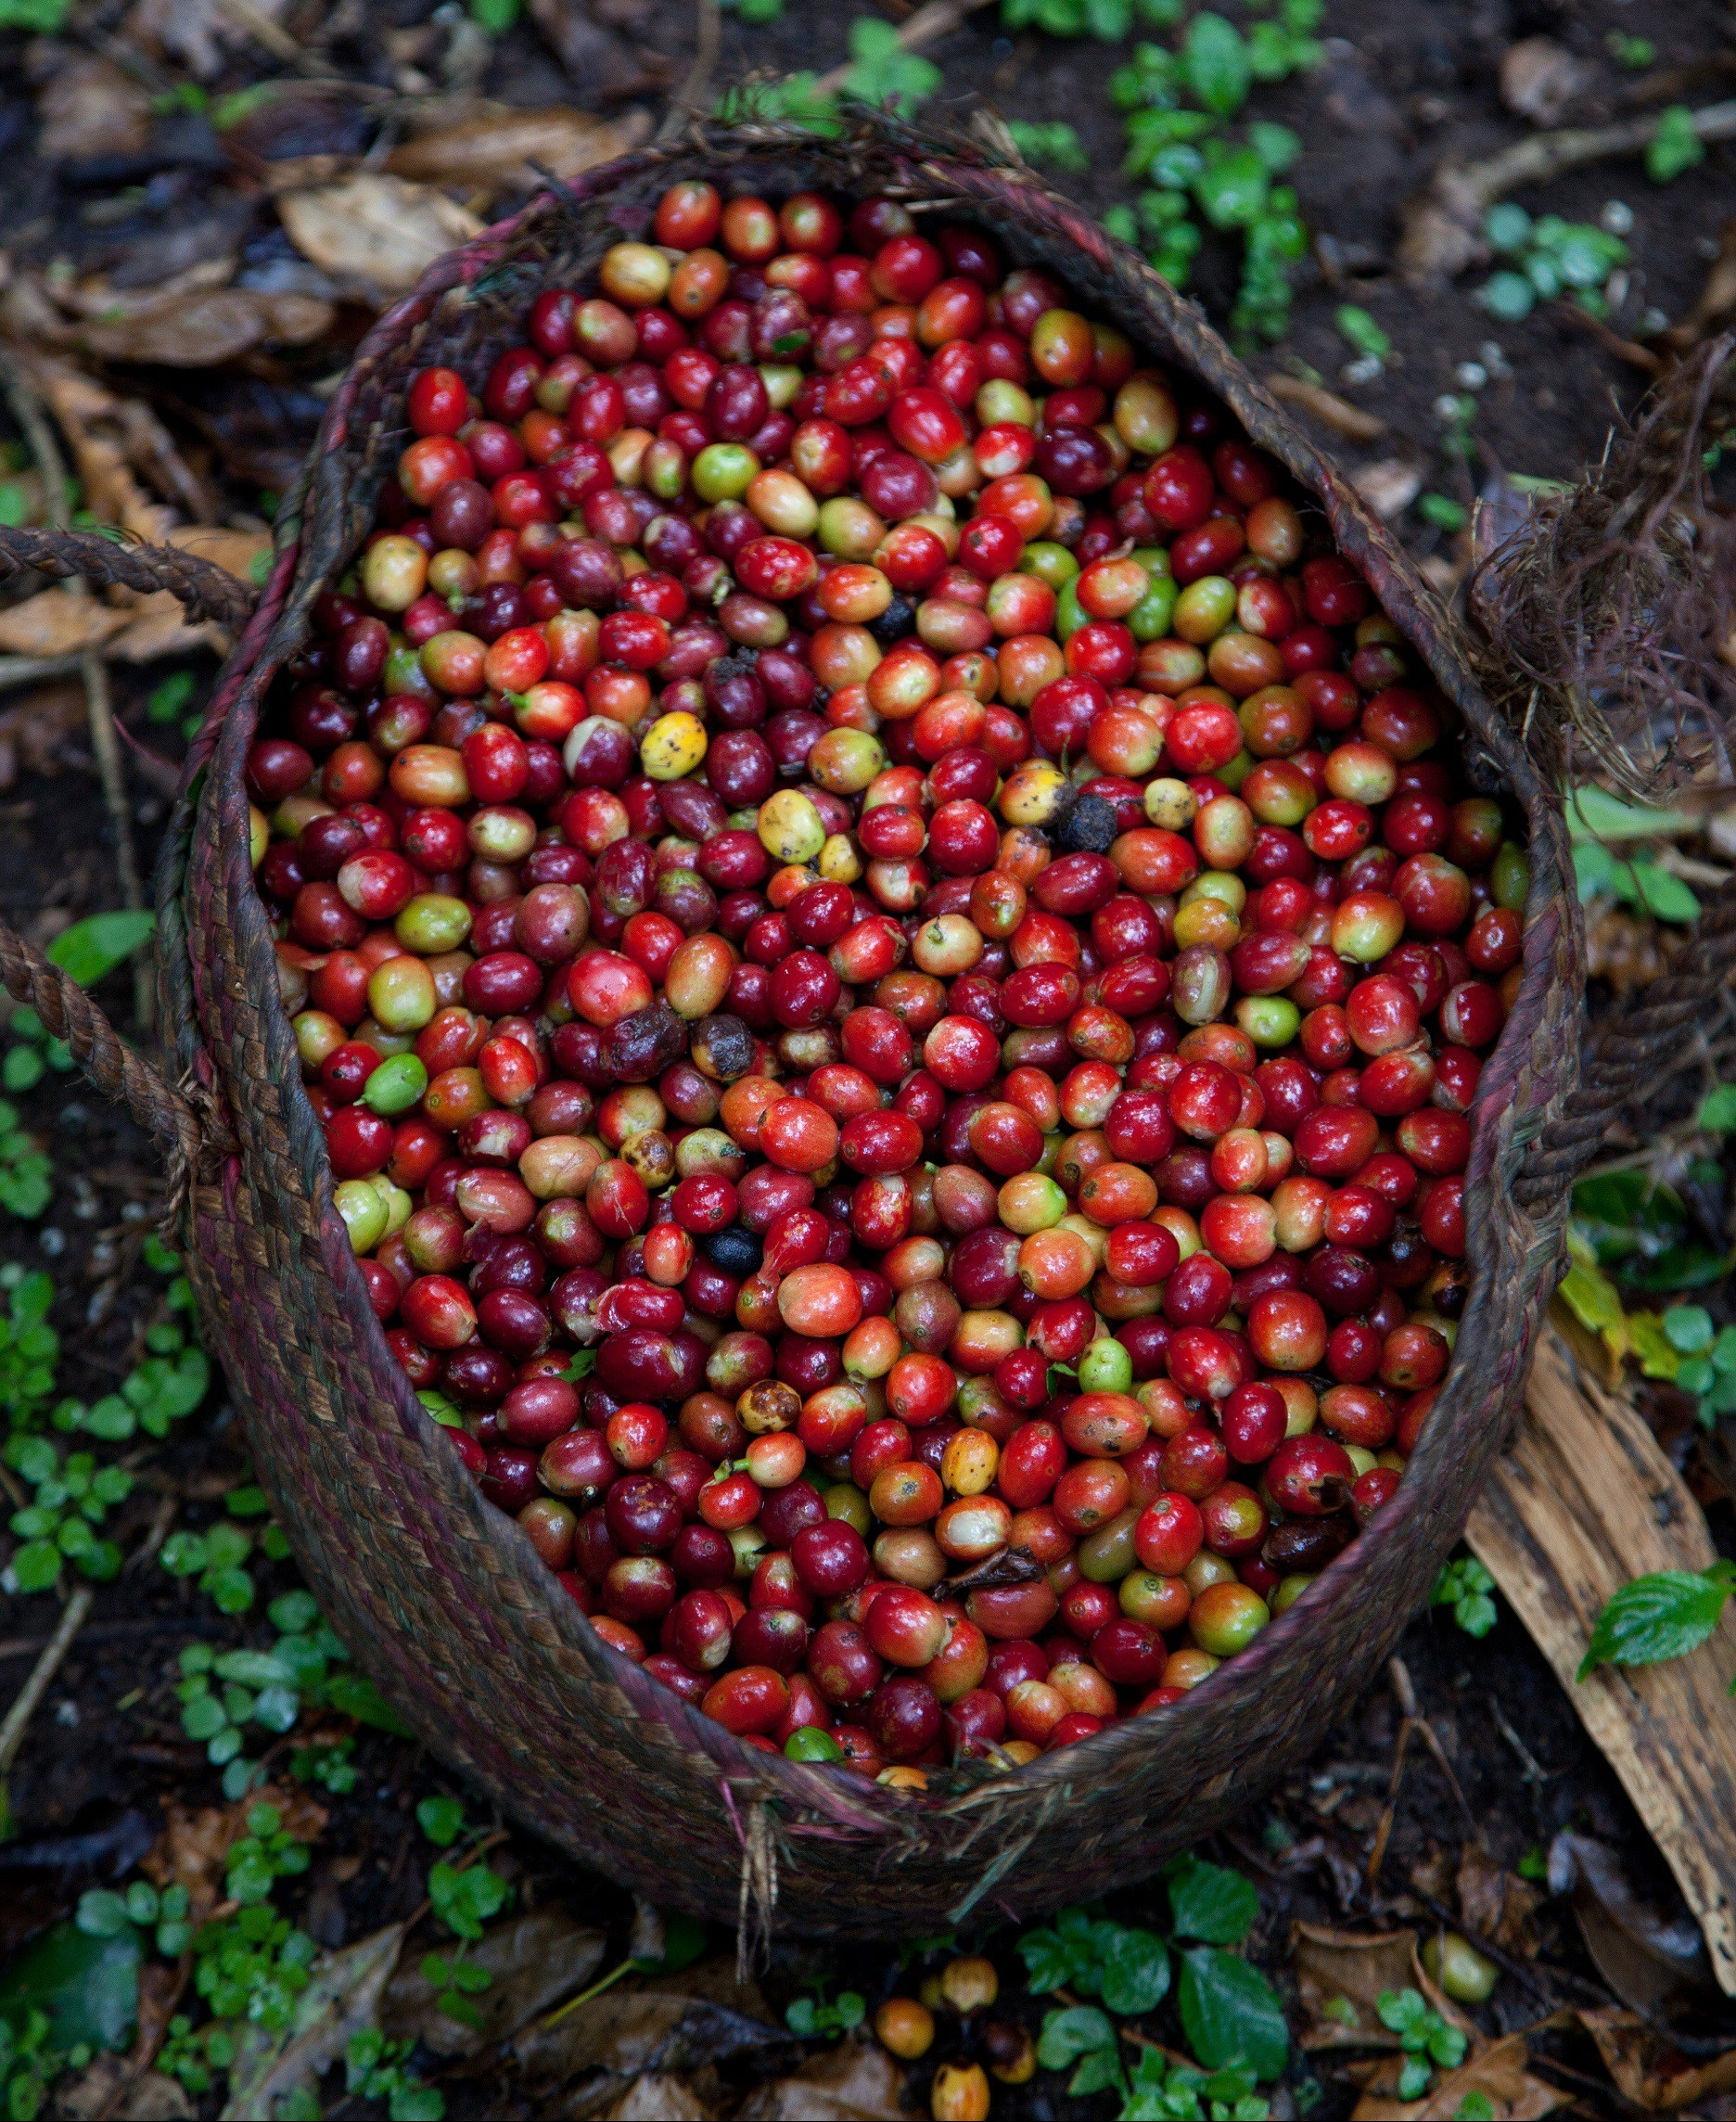 Ethiopia 19-025 Basket of ripe coffee cherries picked off mountain forest plots cleared for coffee cultivation, Credit - Sheko Woreda, SNNPR